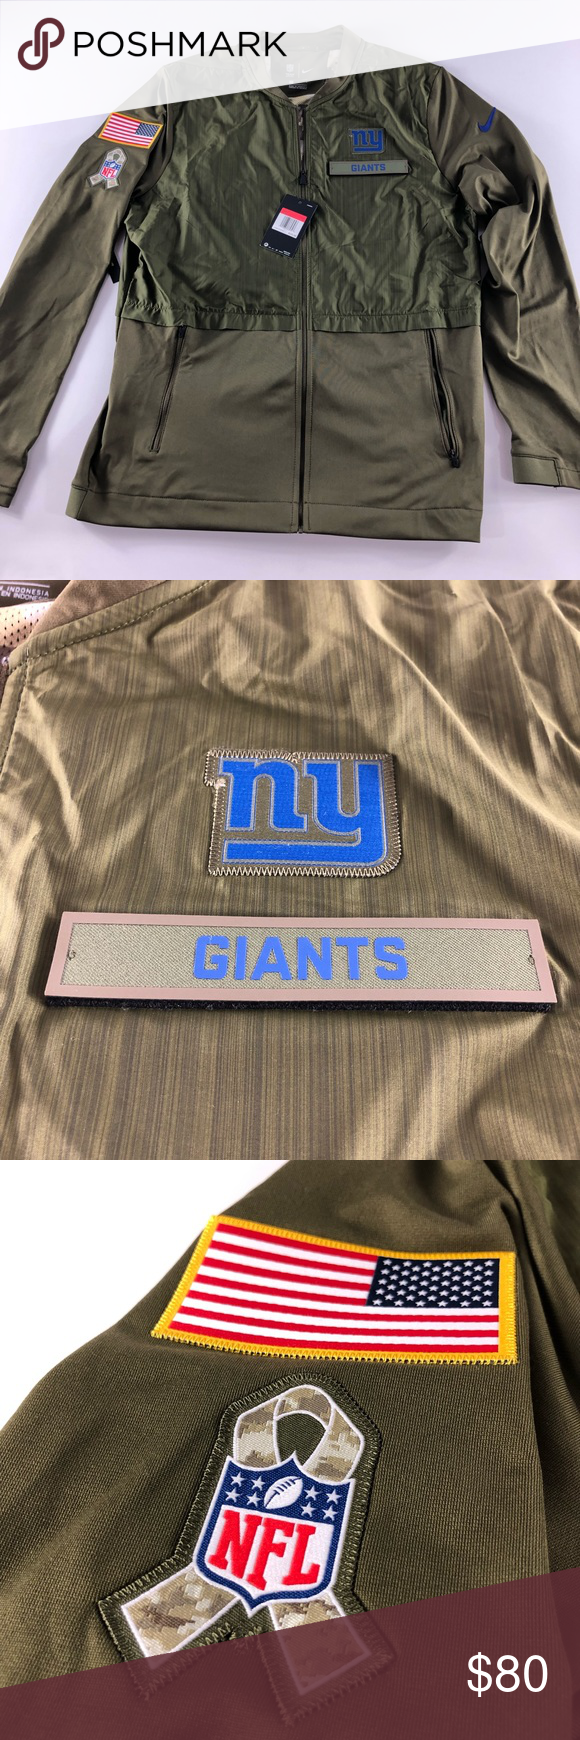 Nike NY New York Giants Salute to Service jacket Nike NY New York Giants Salute to Service jacket Large New with tags Nike Jackets & Coats Windbreakers #salutetoservice Nike NY New York Giants Salute to Service jacket Nike NY New York Giants Salute to Service jacket Large New with tags Nike Jackets & Coats Windbreakers #salutetoservice